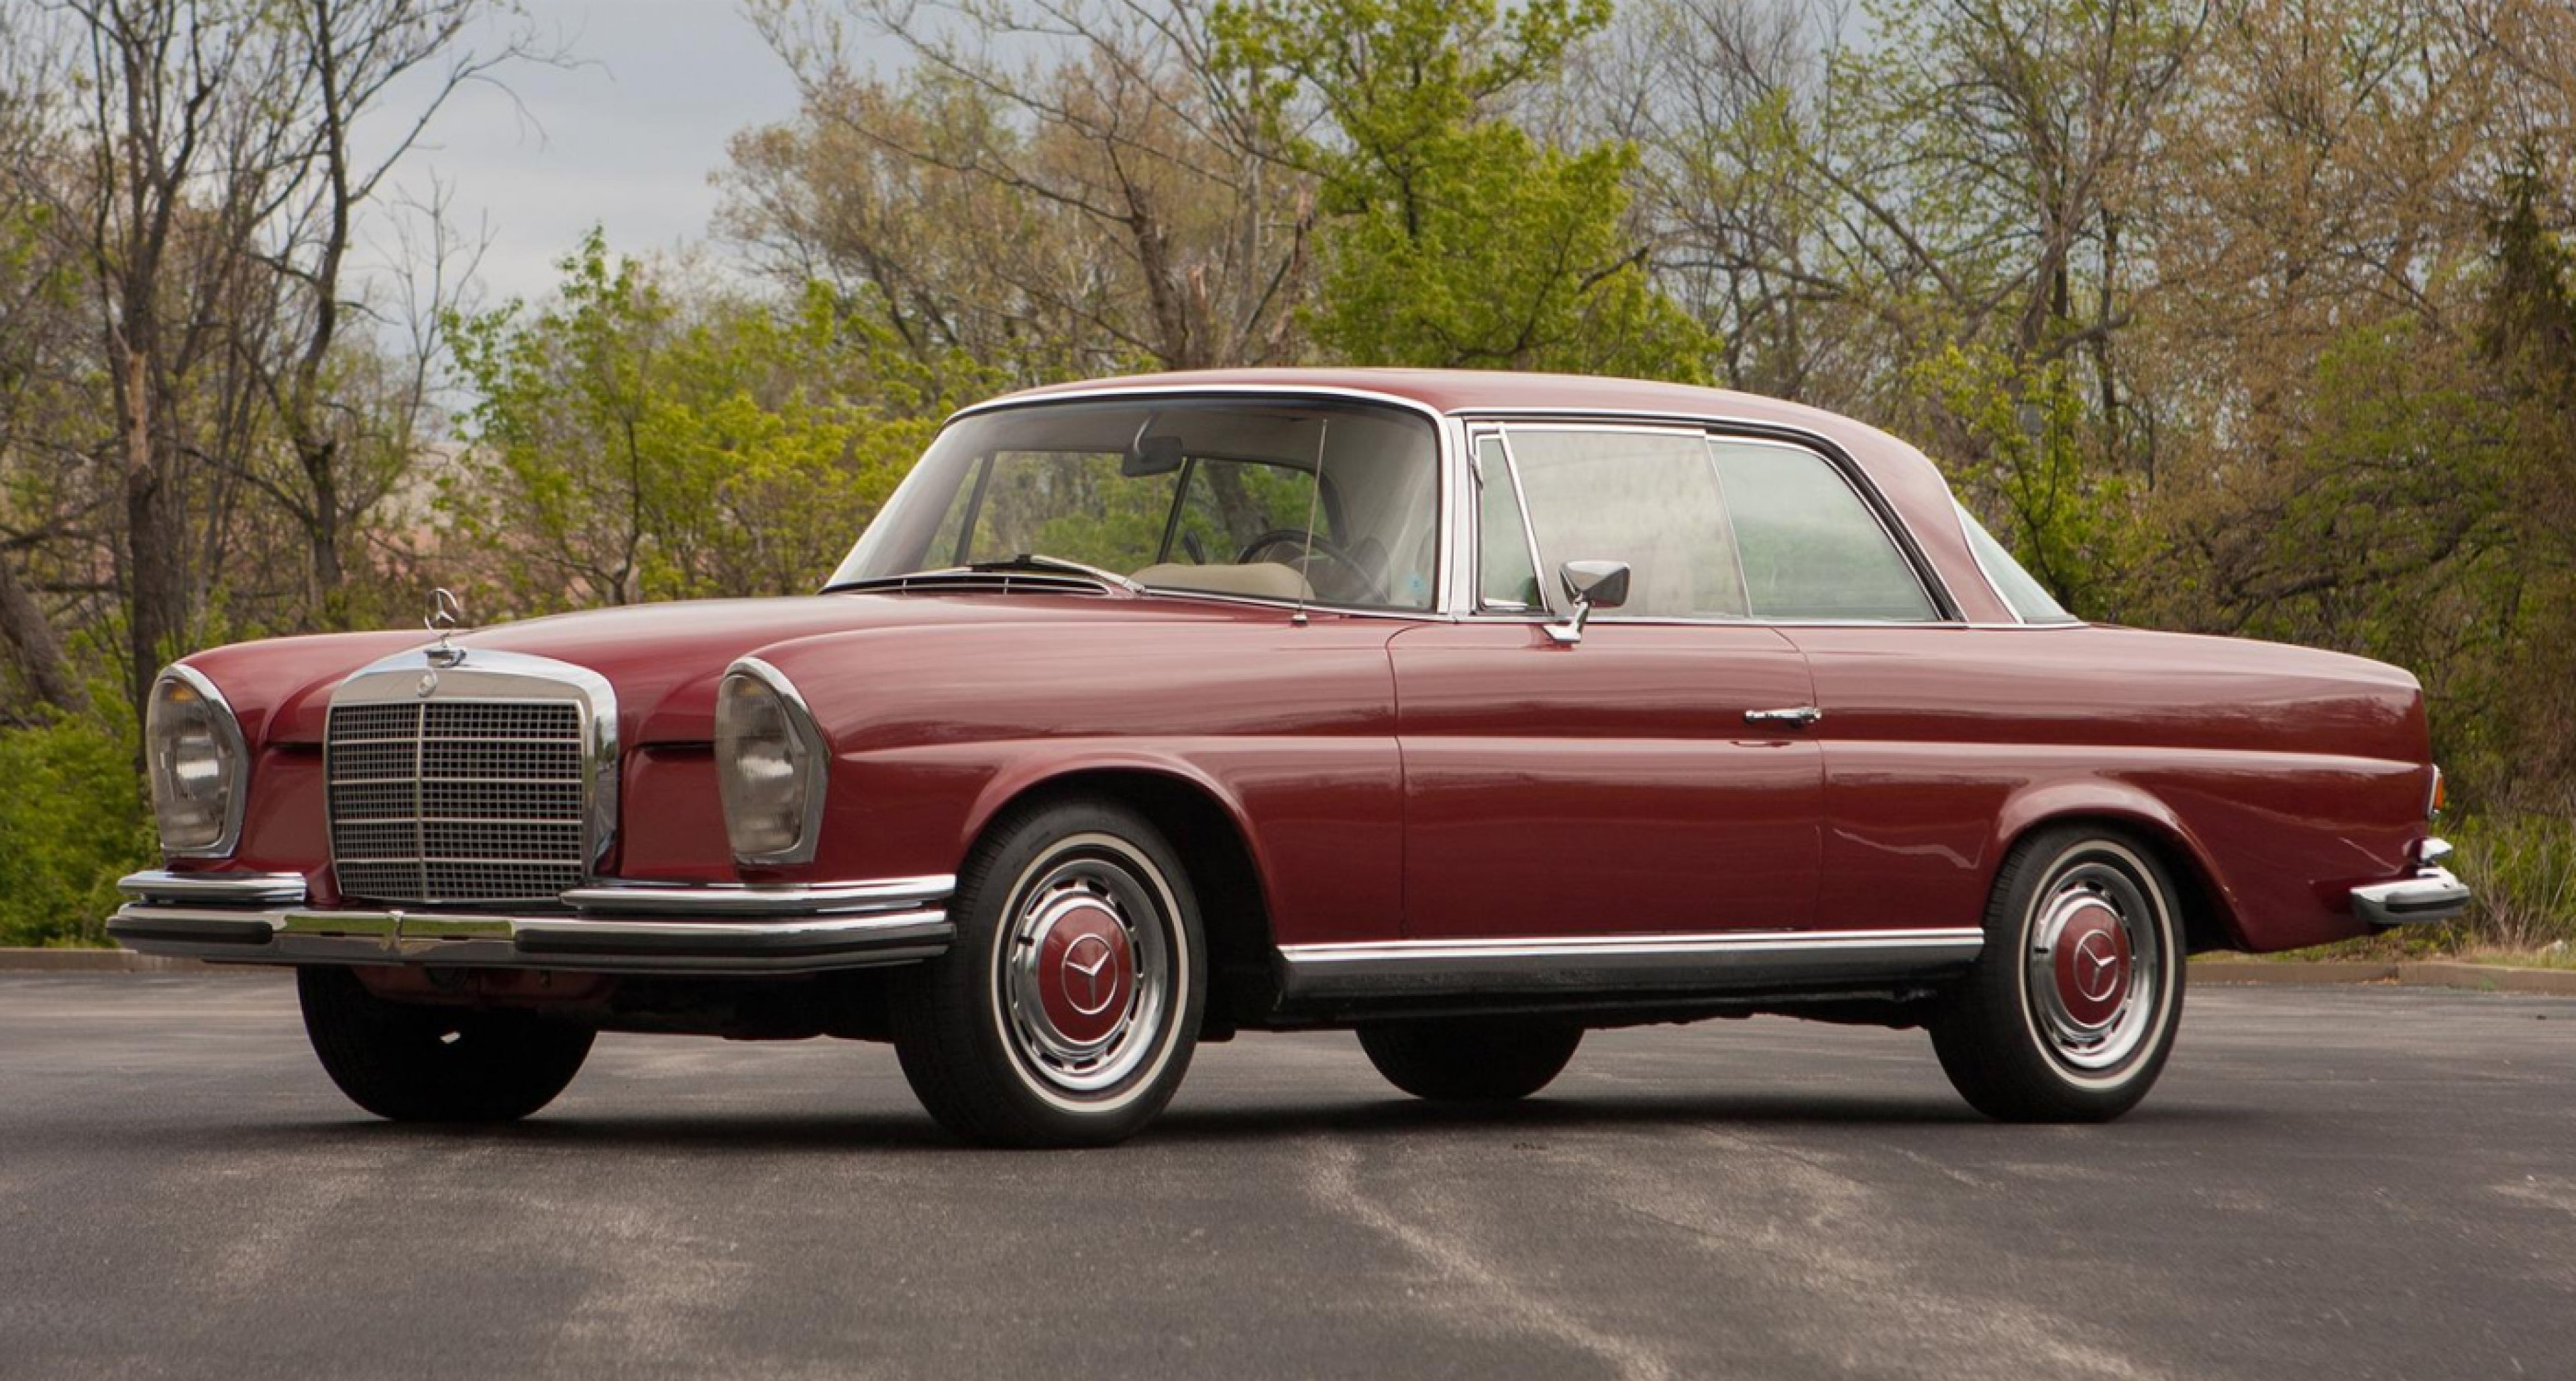 Lot 18: 1969 Mercedes-Benz 280SE 3.5 Coupé 'The first production example' (€ 100,000 - 130,000)